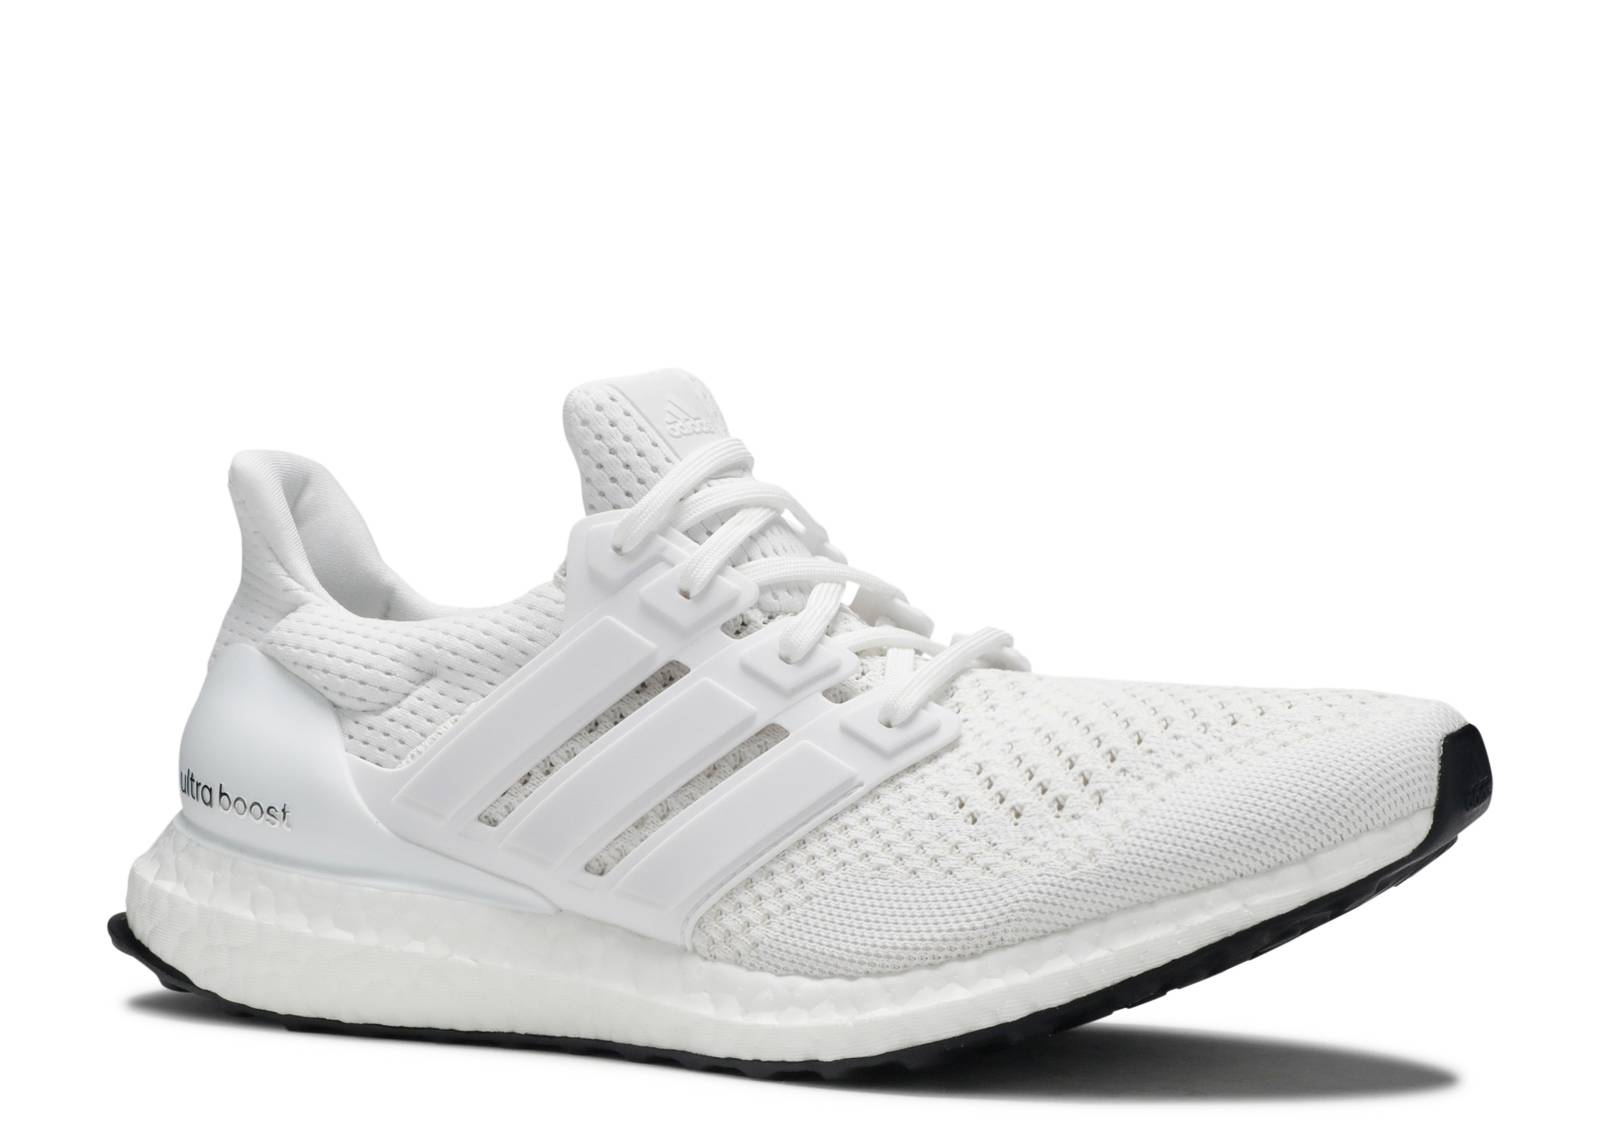 46130ef338a Ultra Boost M - Adidas - s77416 - white white